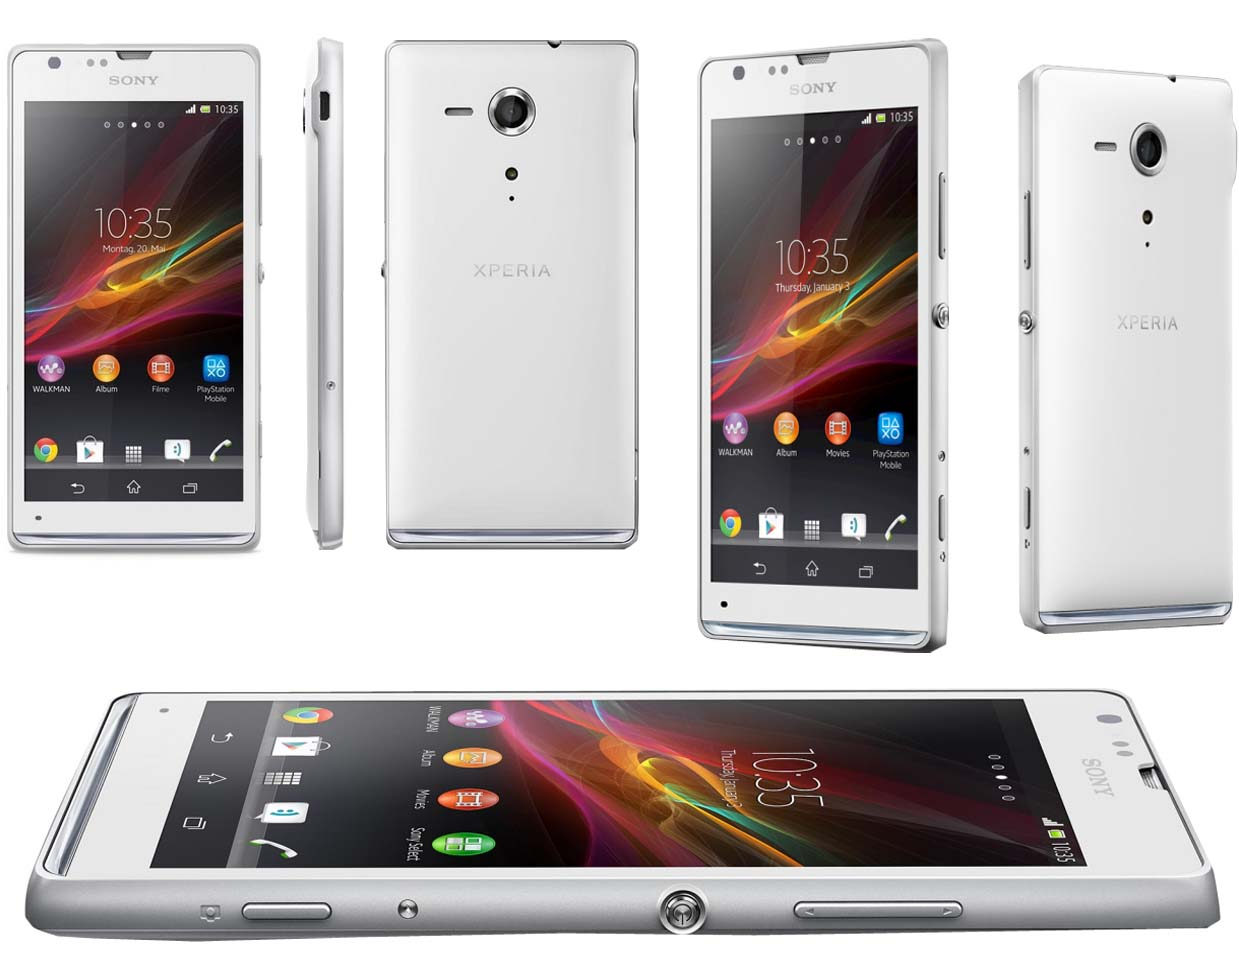 sony-xperia-sp-white-silver-copy-29309-zoom.jpg